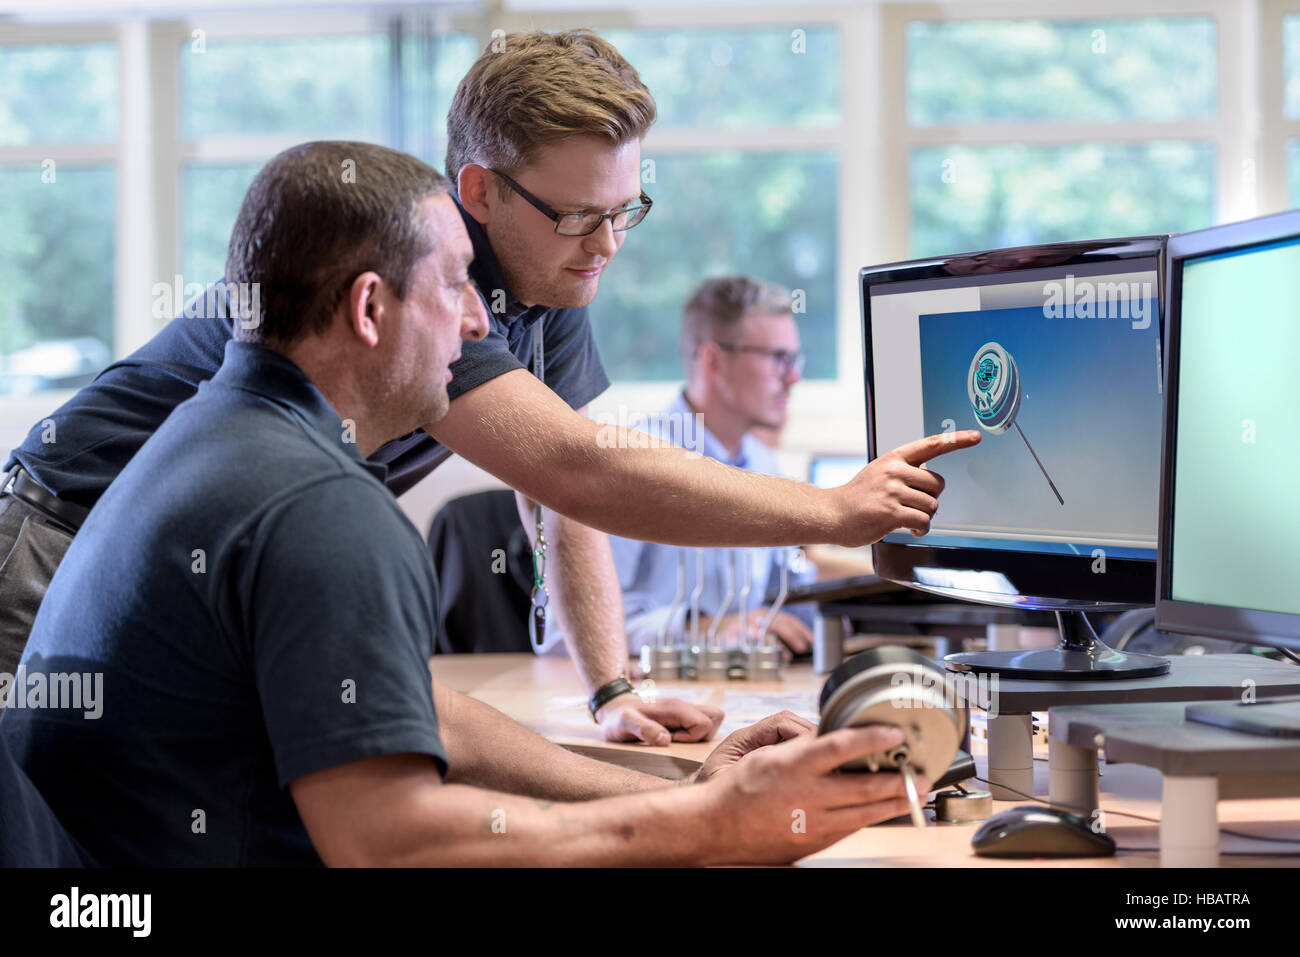 Engineers discussing CAD drawings onscreen of exhaust valve actuator in factory - Stock Image